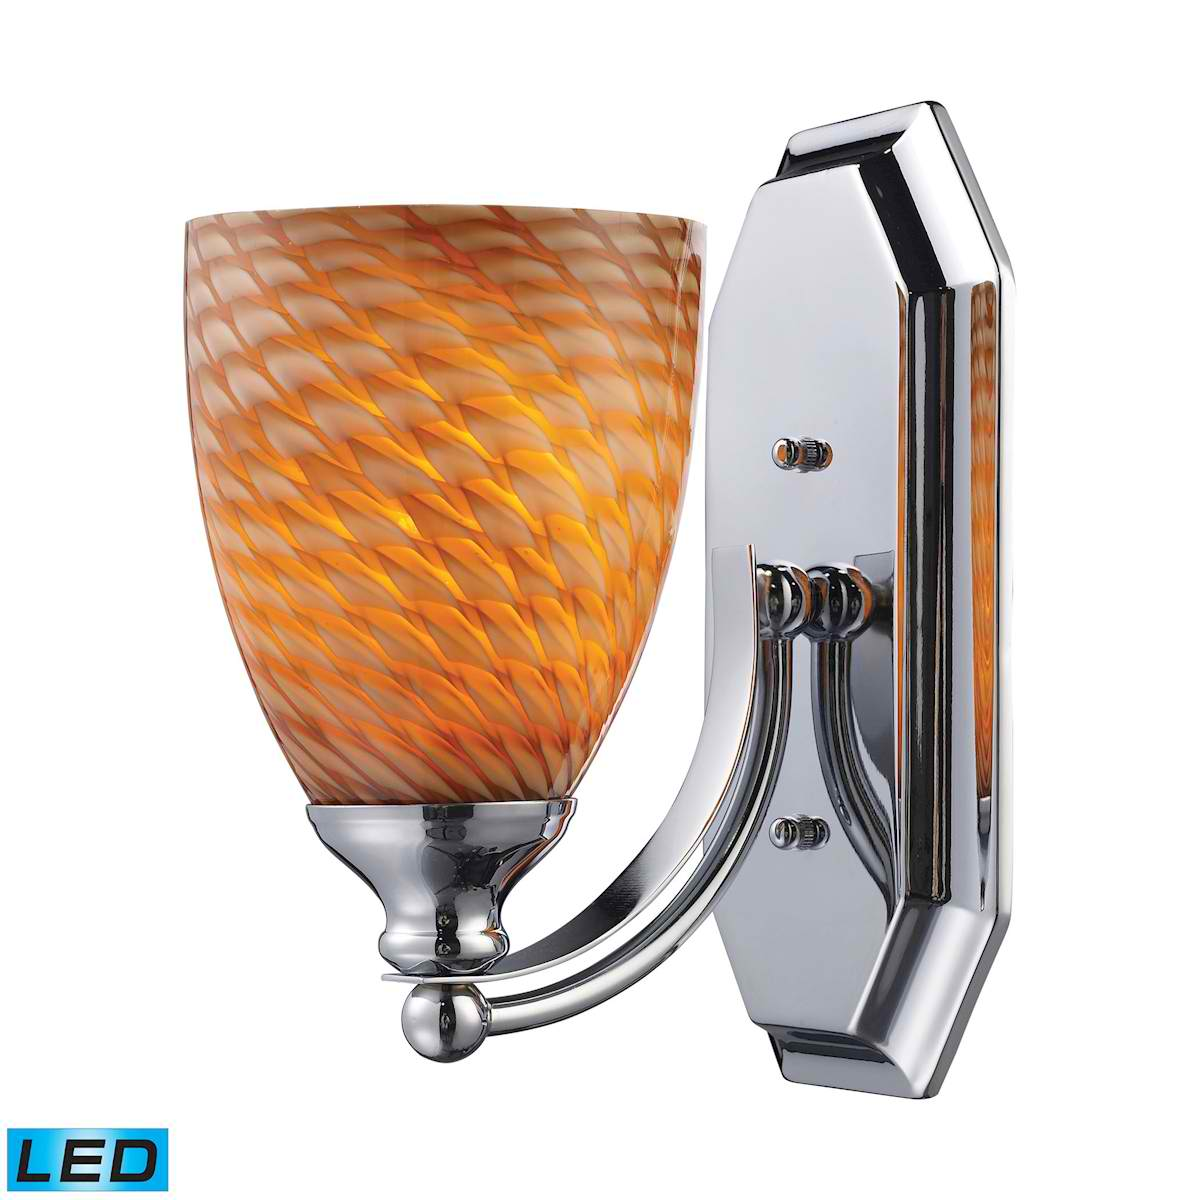 1 Light Vanity in Polished Chrome and Coco Glass - LED Offering Up To 800 Lumens (60 Watt Equivalent)